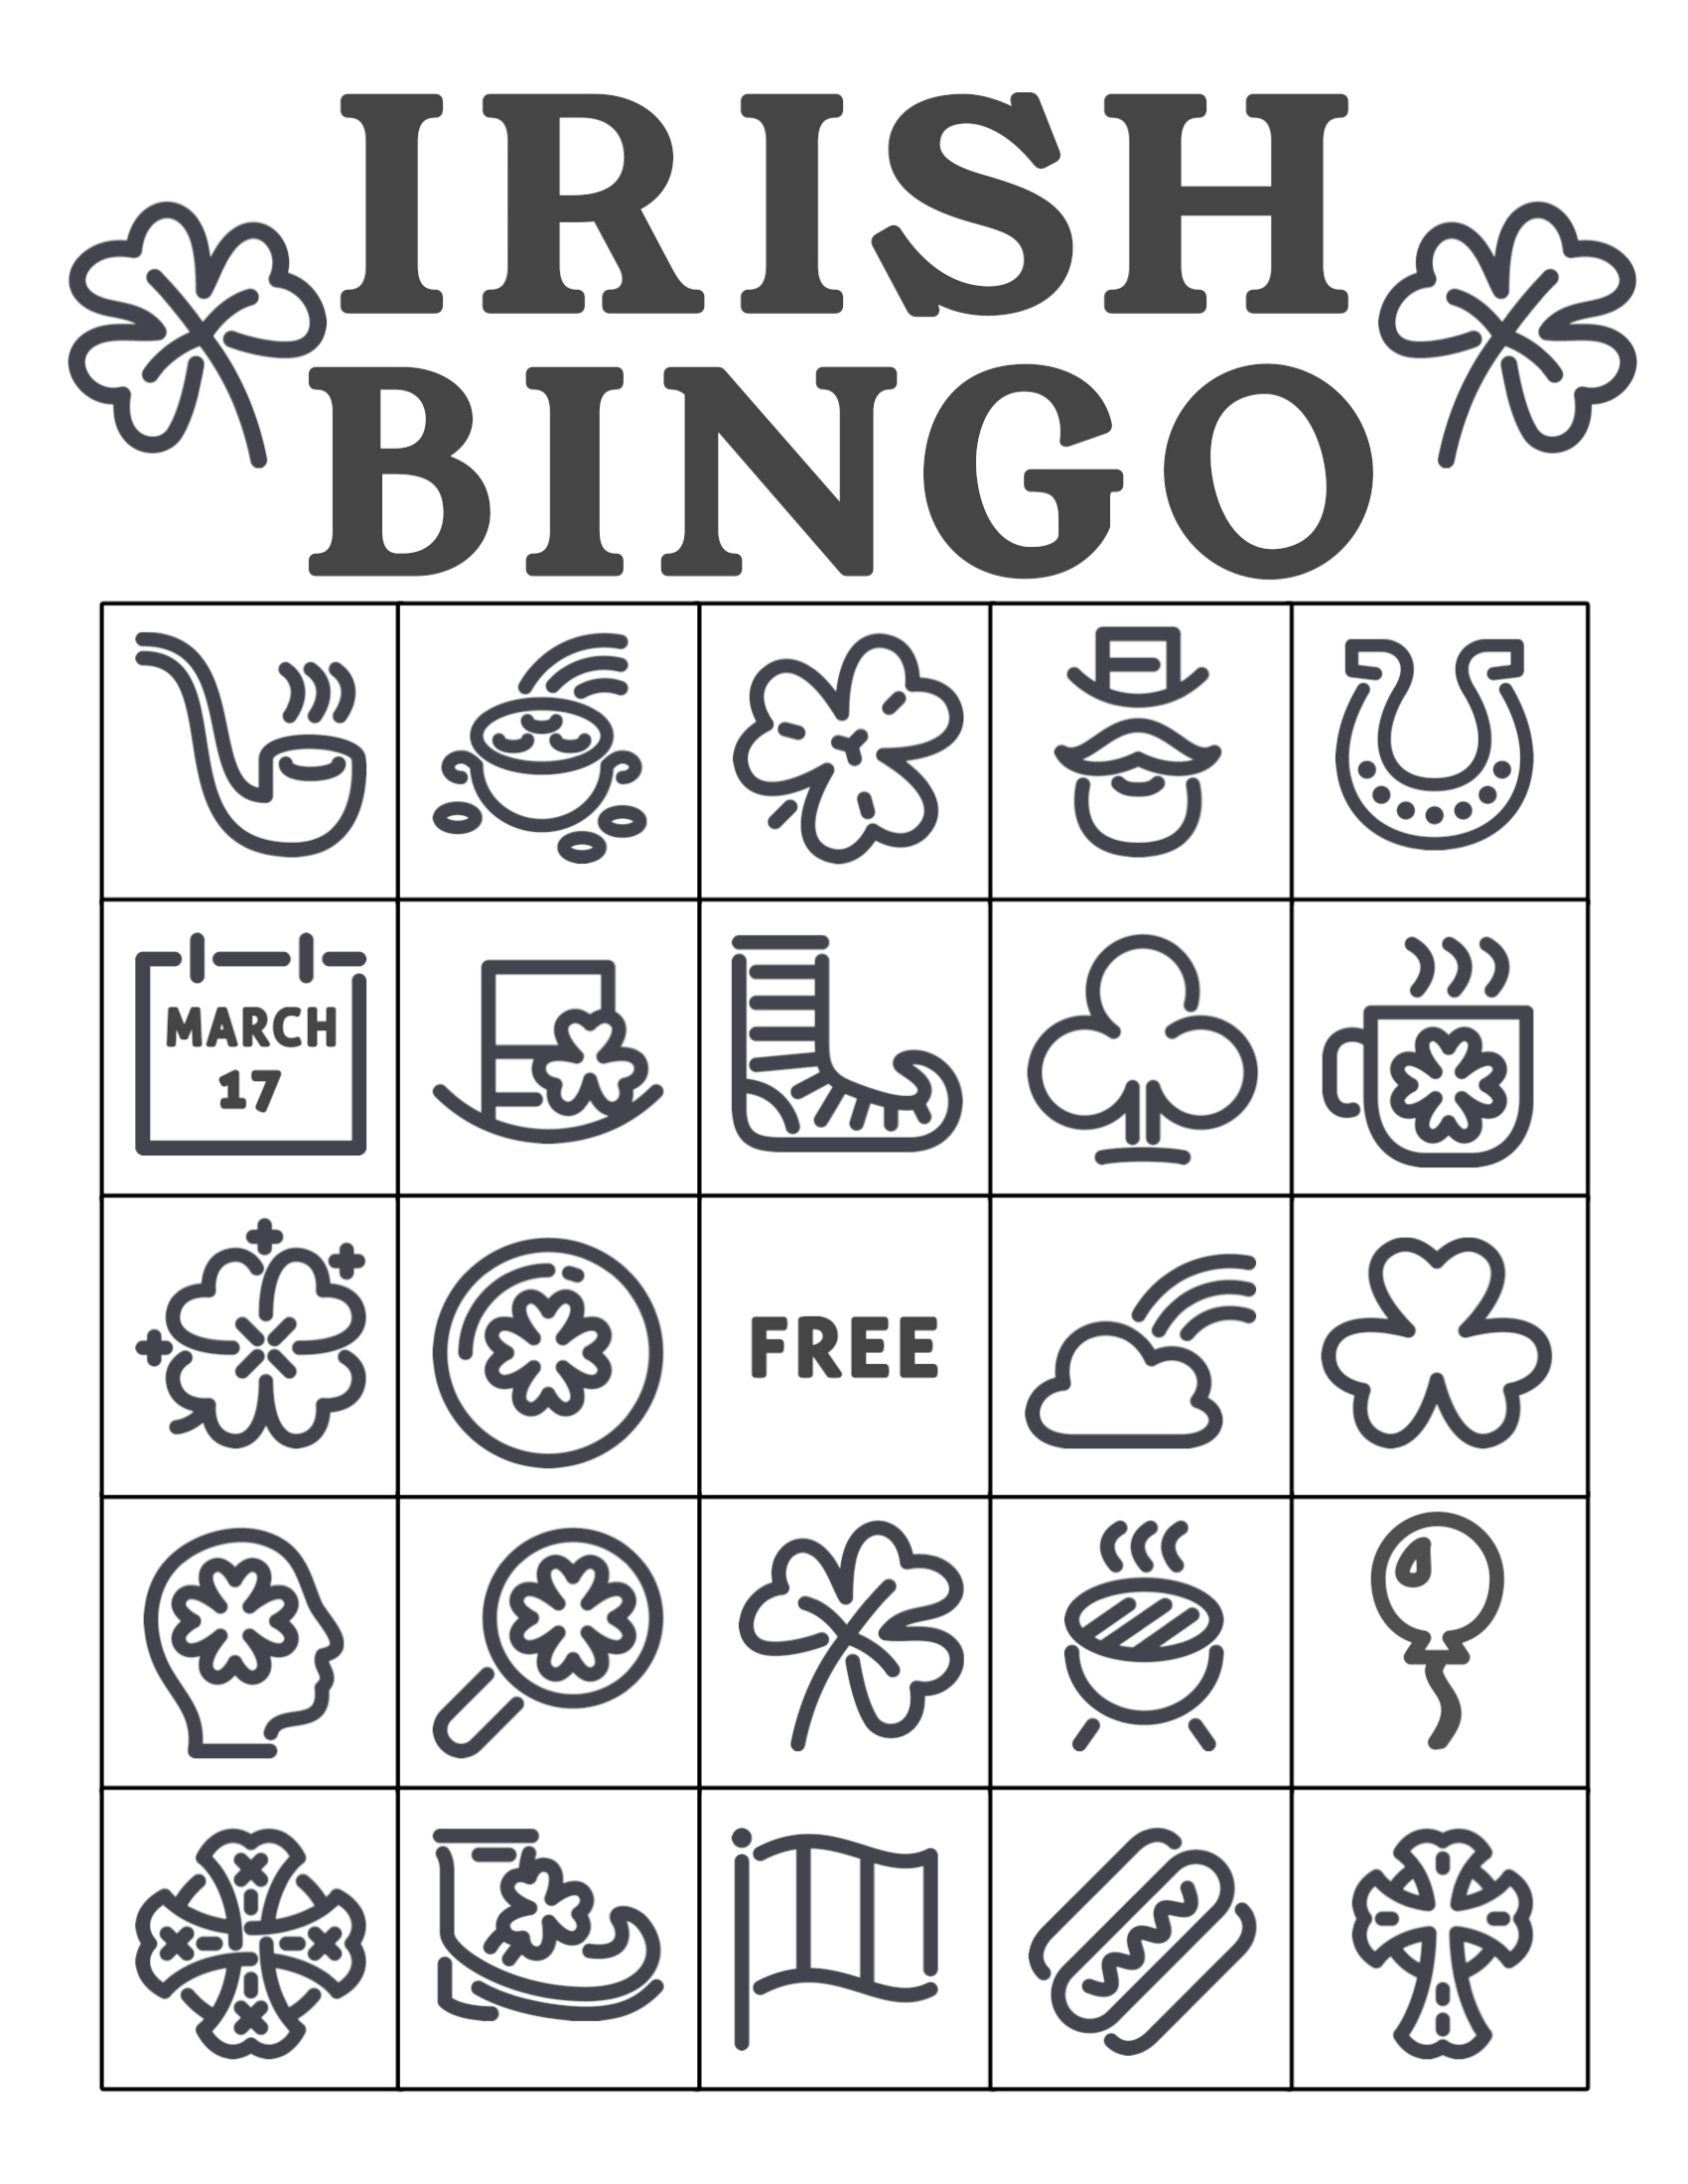 Free Printable St. Patrick's Day Bingo Cards - Paper Trail